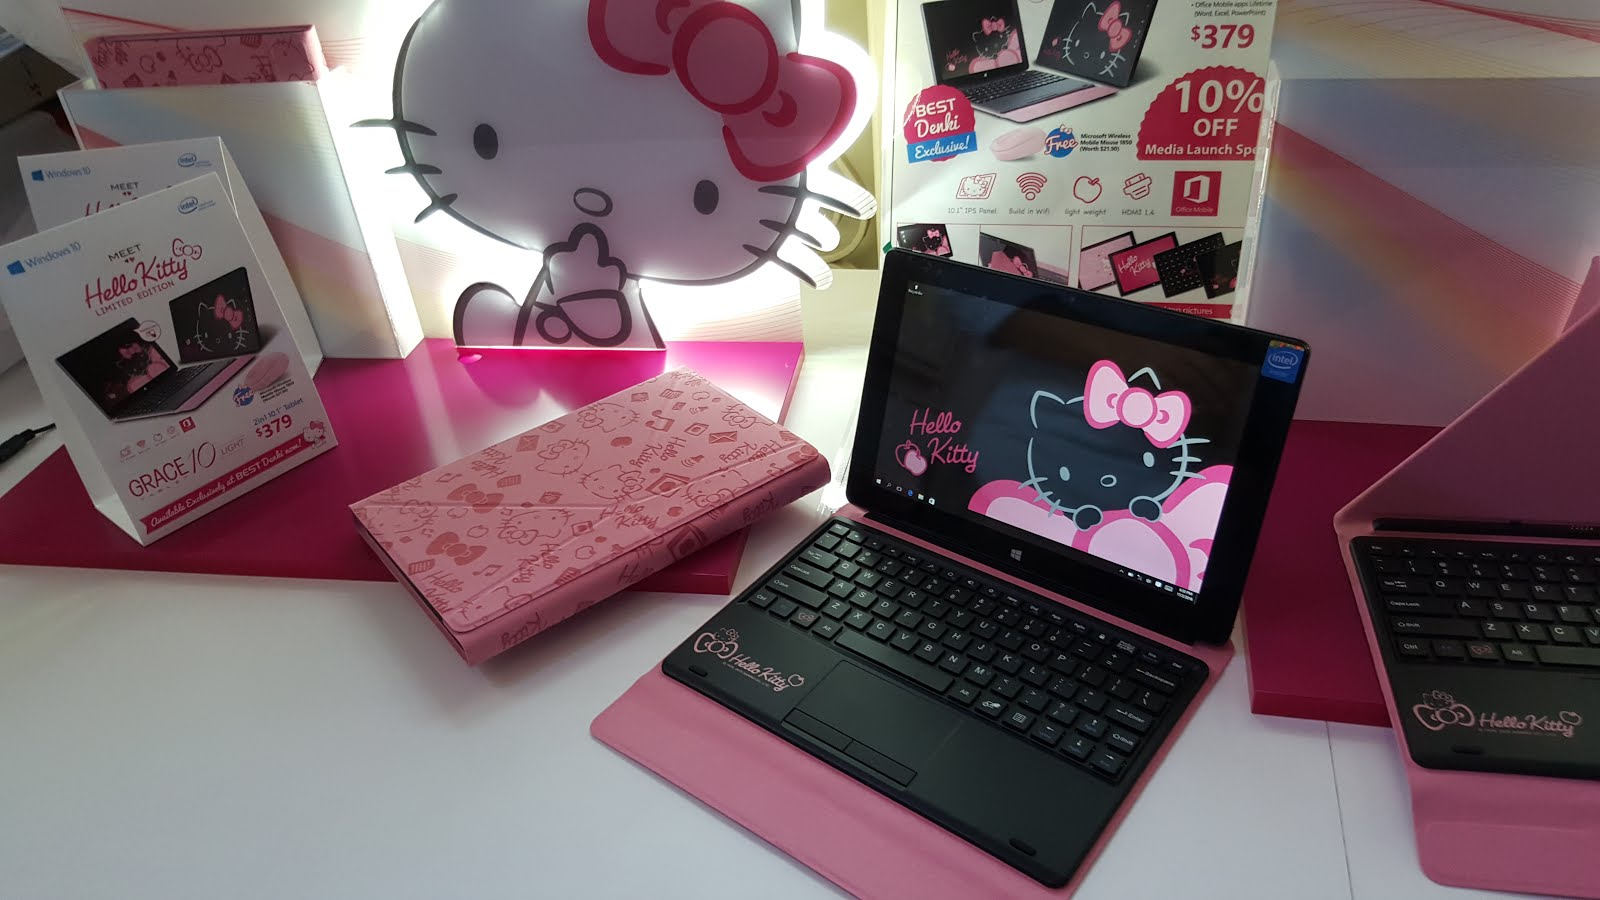 b208e6e79 Developed by E-Huge Technologies, the device is the first Sanrio-themed  2-in-1 Windows 10 tablet from the brand's WMP Character Series that reaches  our ...